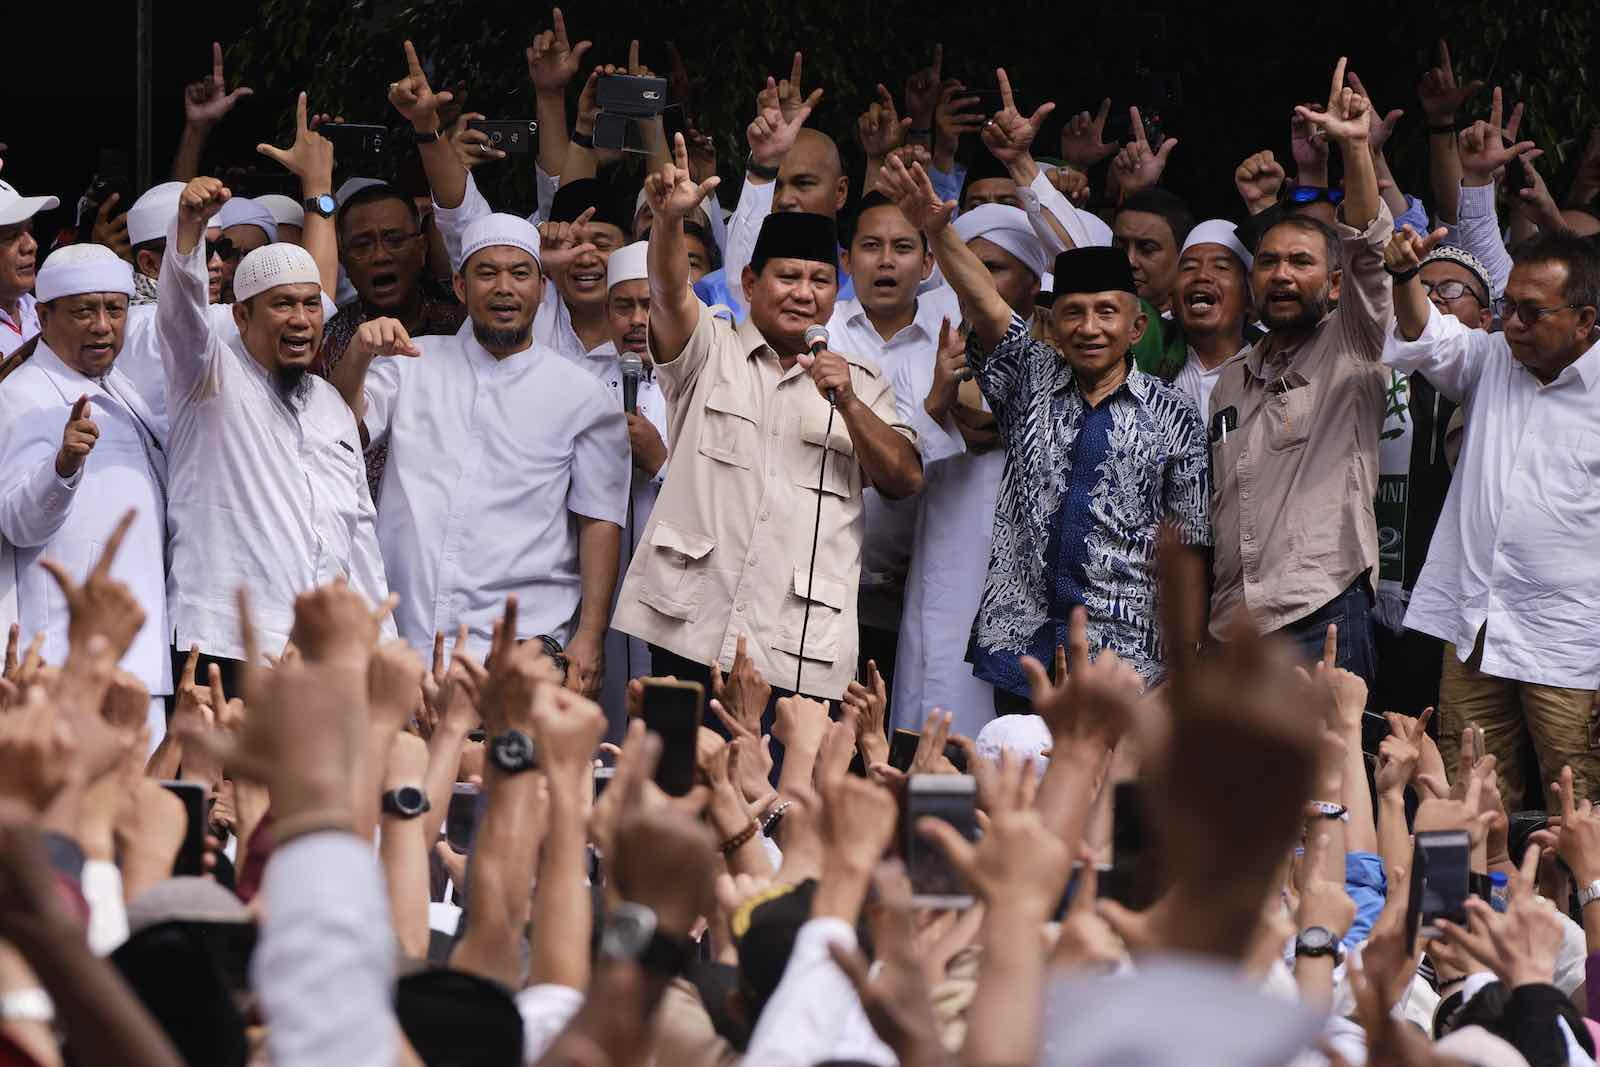 Presidential candidate Prabowo Subianto (centre) speaks to supporters in Jakarta after the general election in April 2019, which he eventually lost to incumbent Joko Widodo (Photo: Ed Wray/Getty Images)